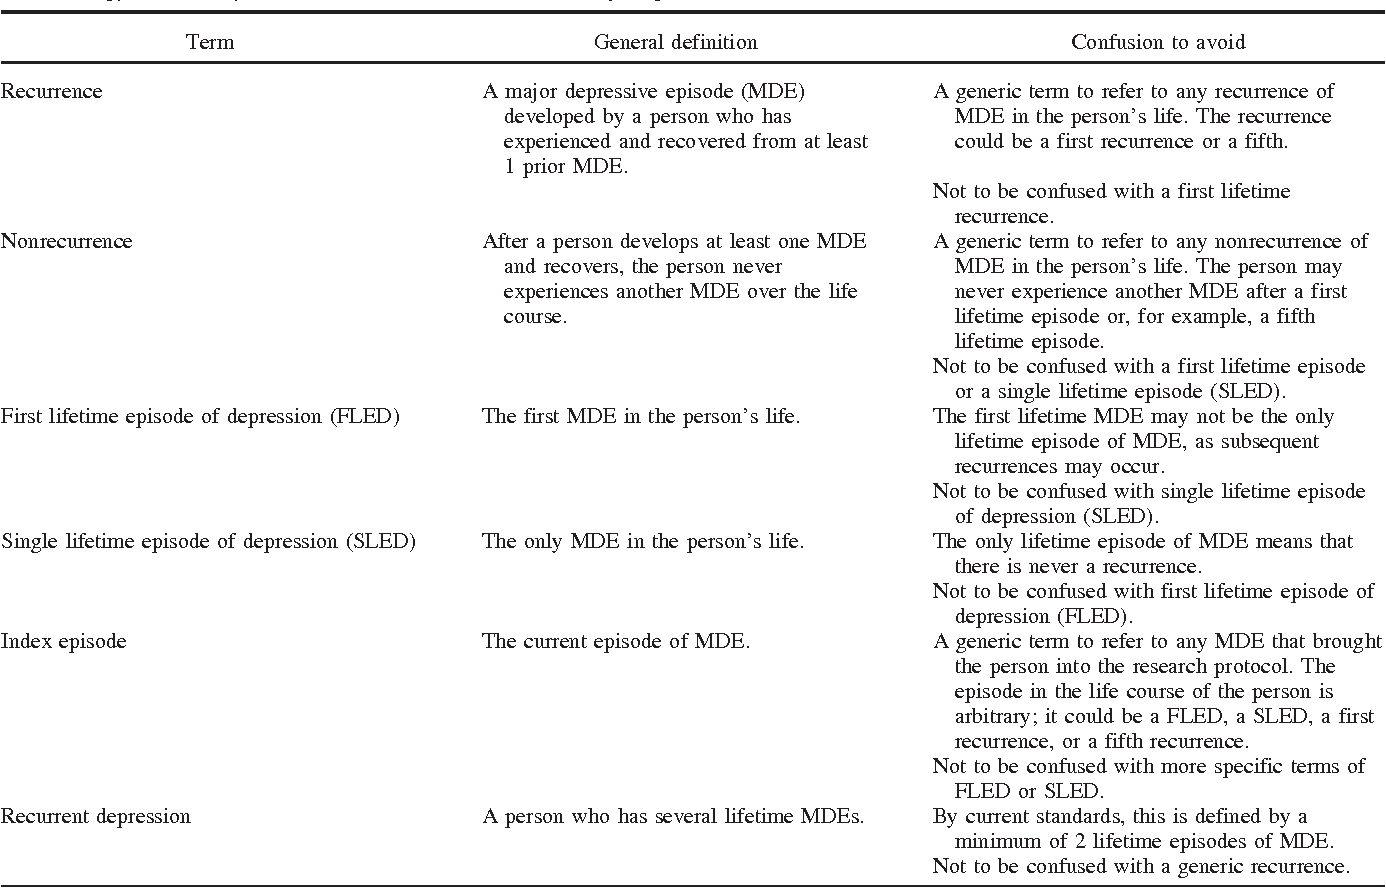 recurrence in major depression: a conceptual analysis. - semantic